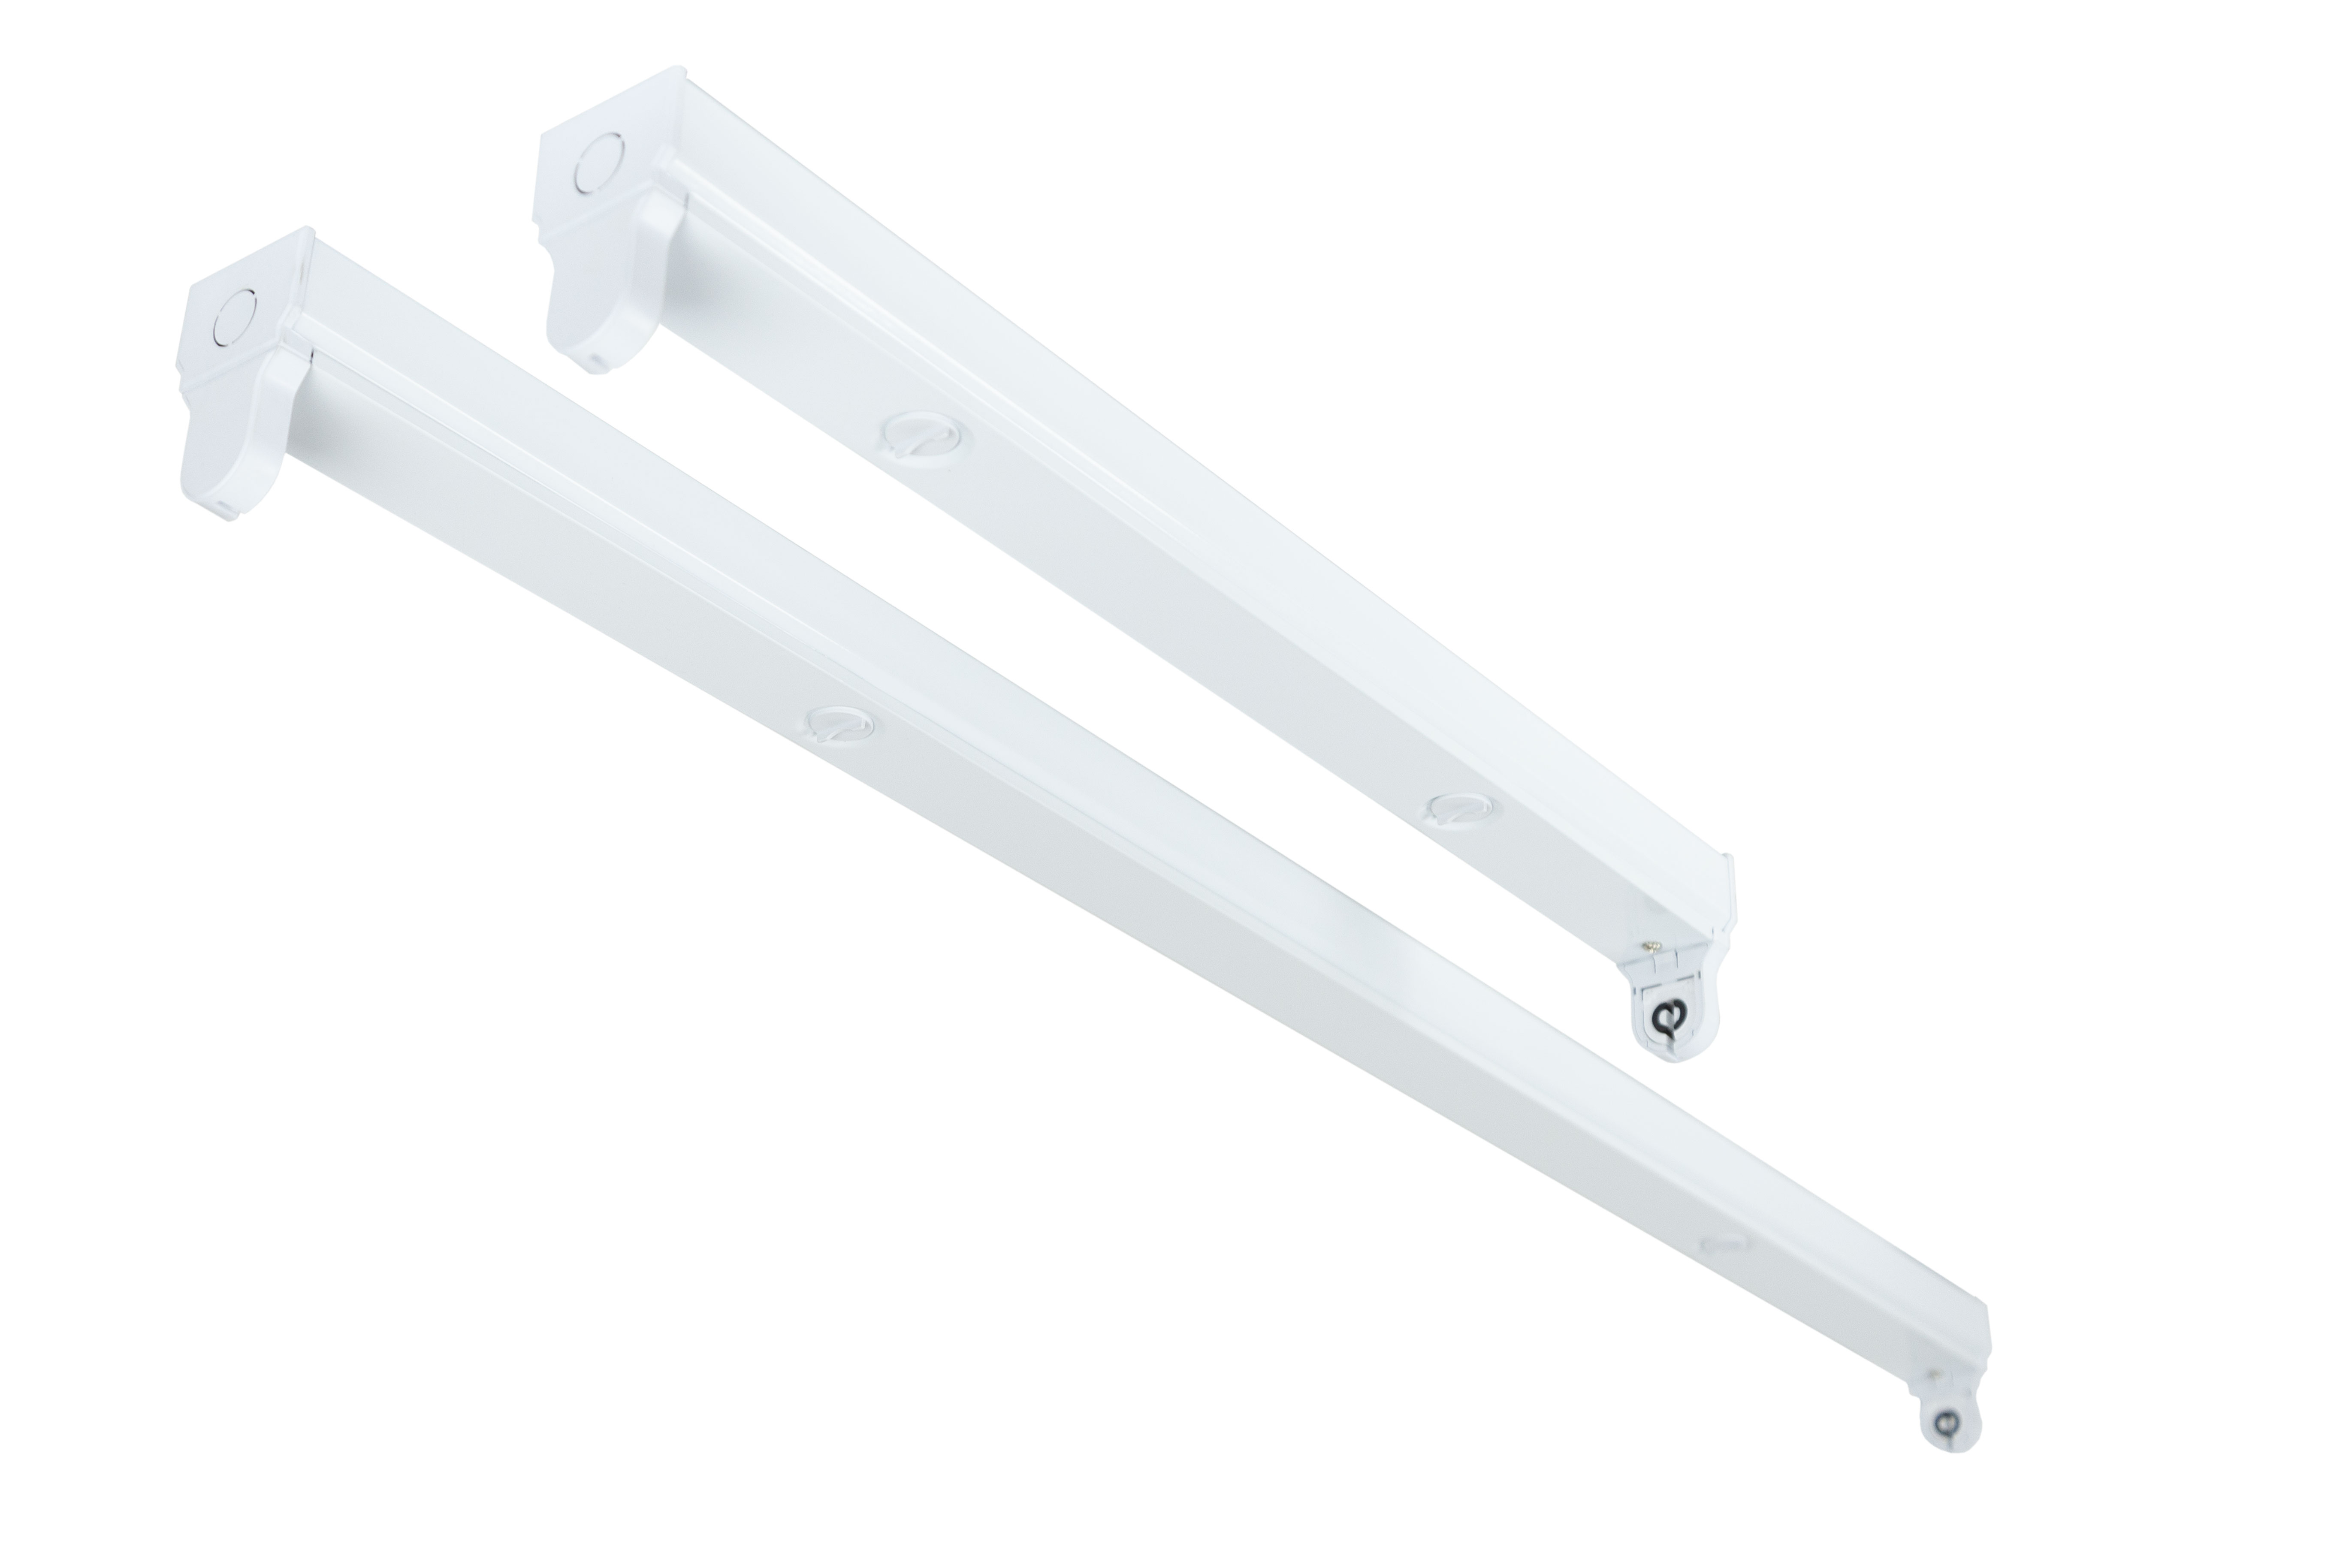 Comparison Strip Fixtures